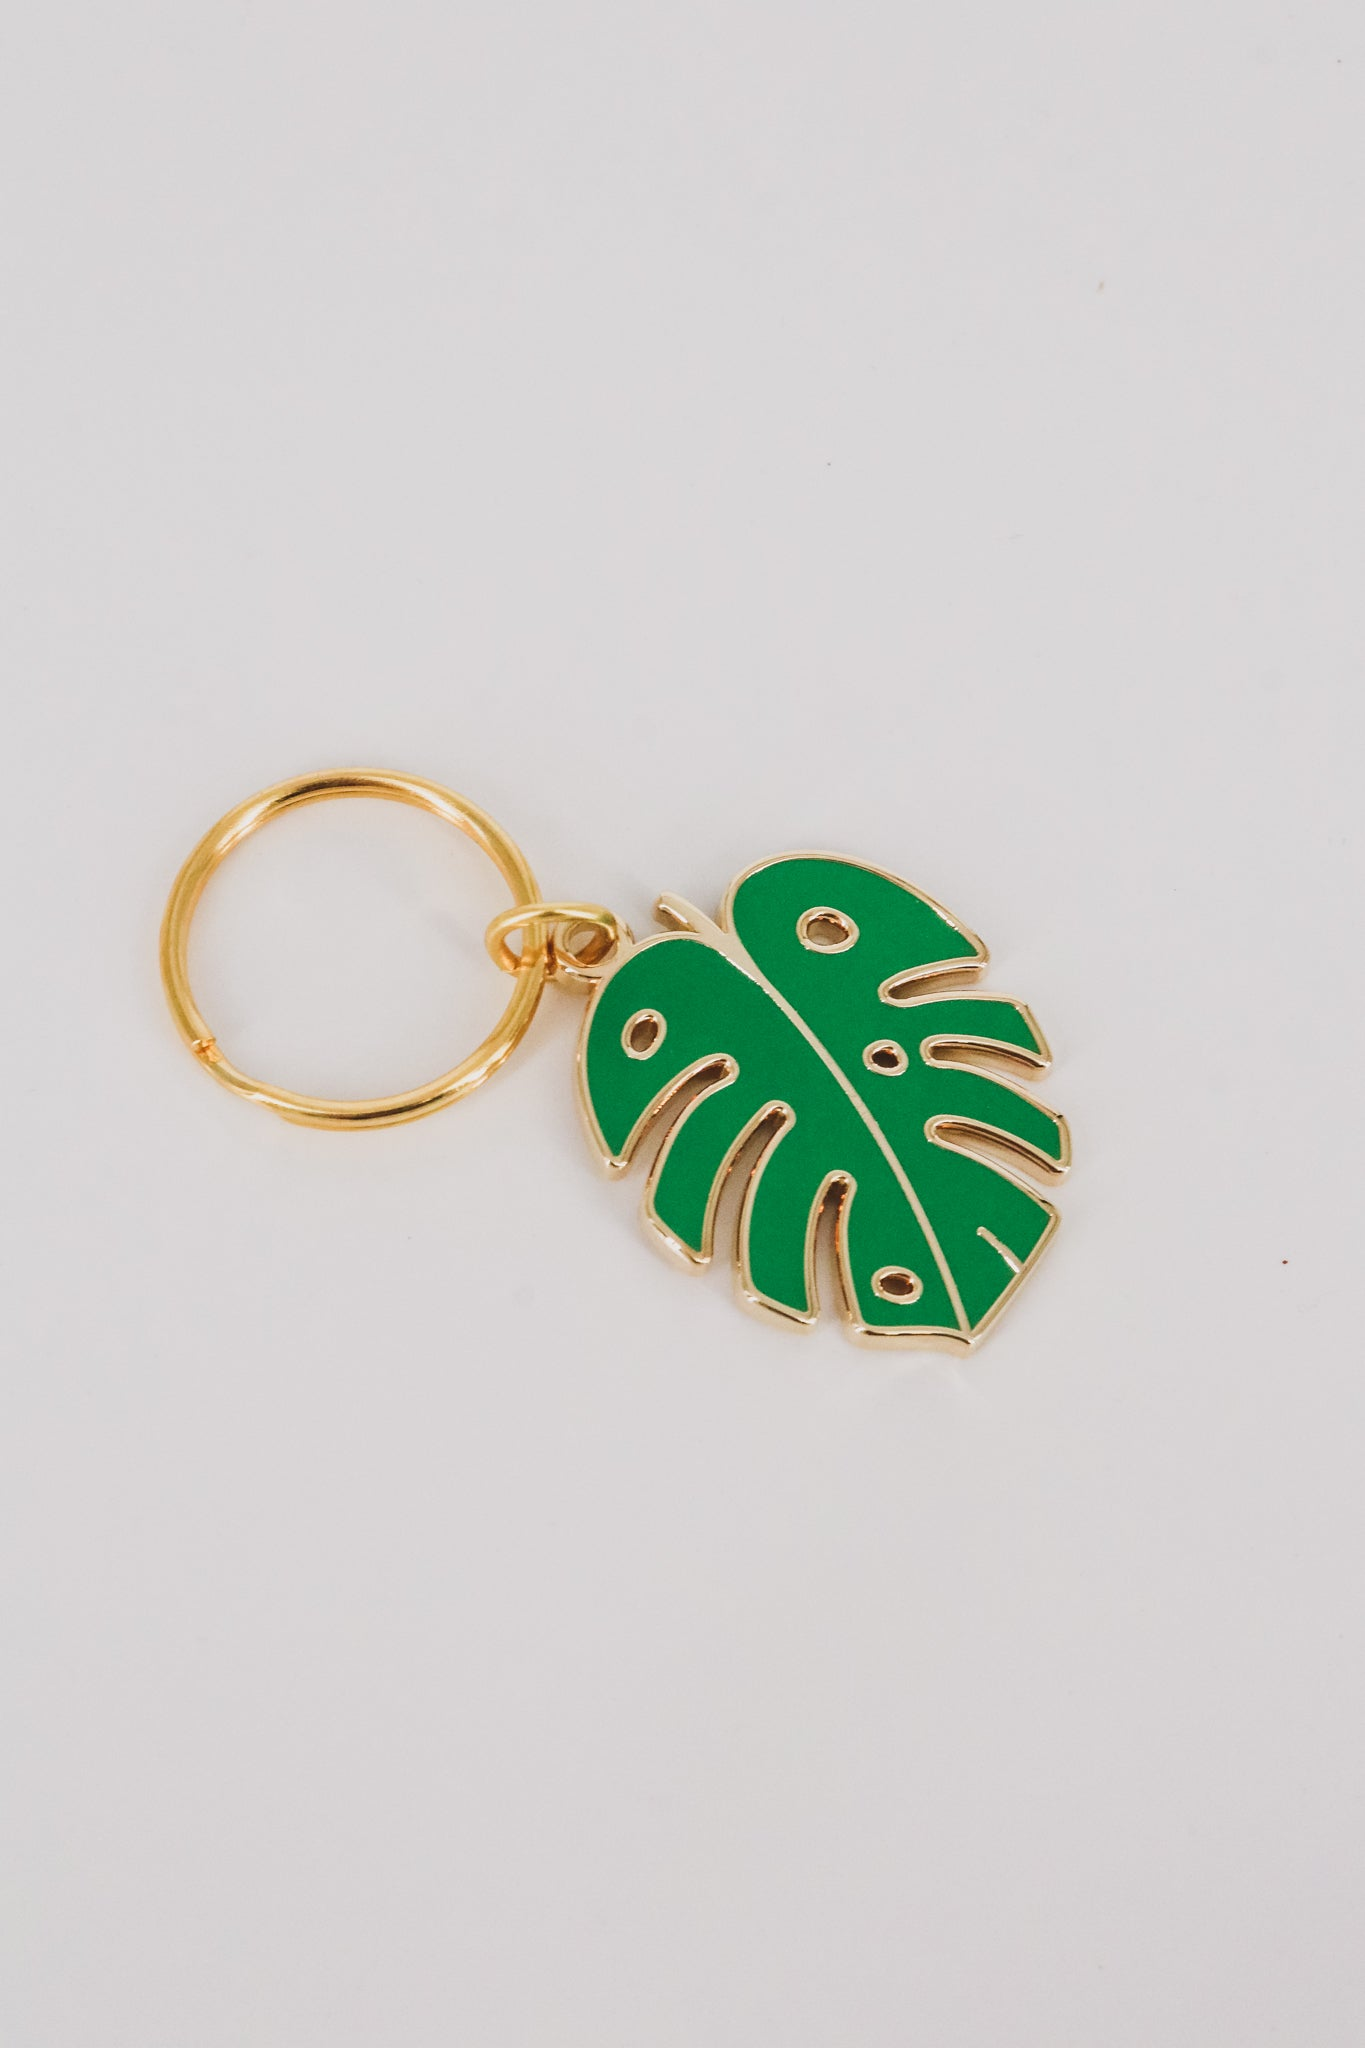 Cute Keychain 2 - JQ Clothing Co. - Oakes, ND